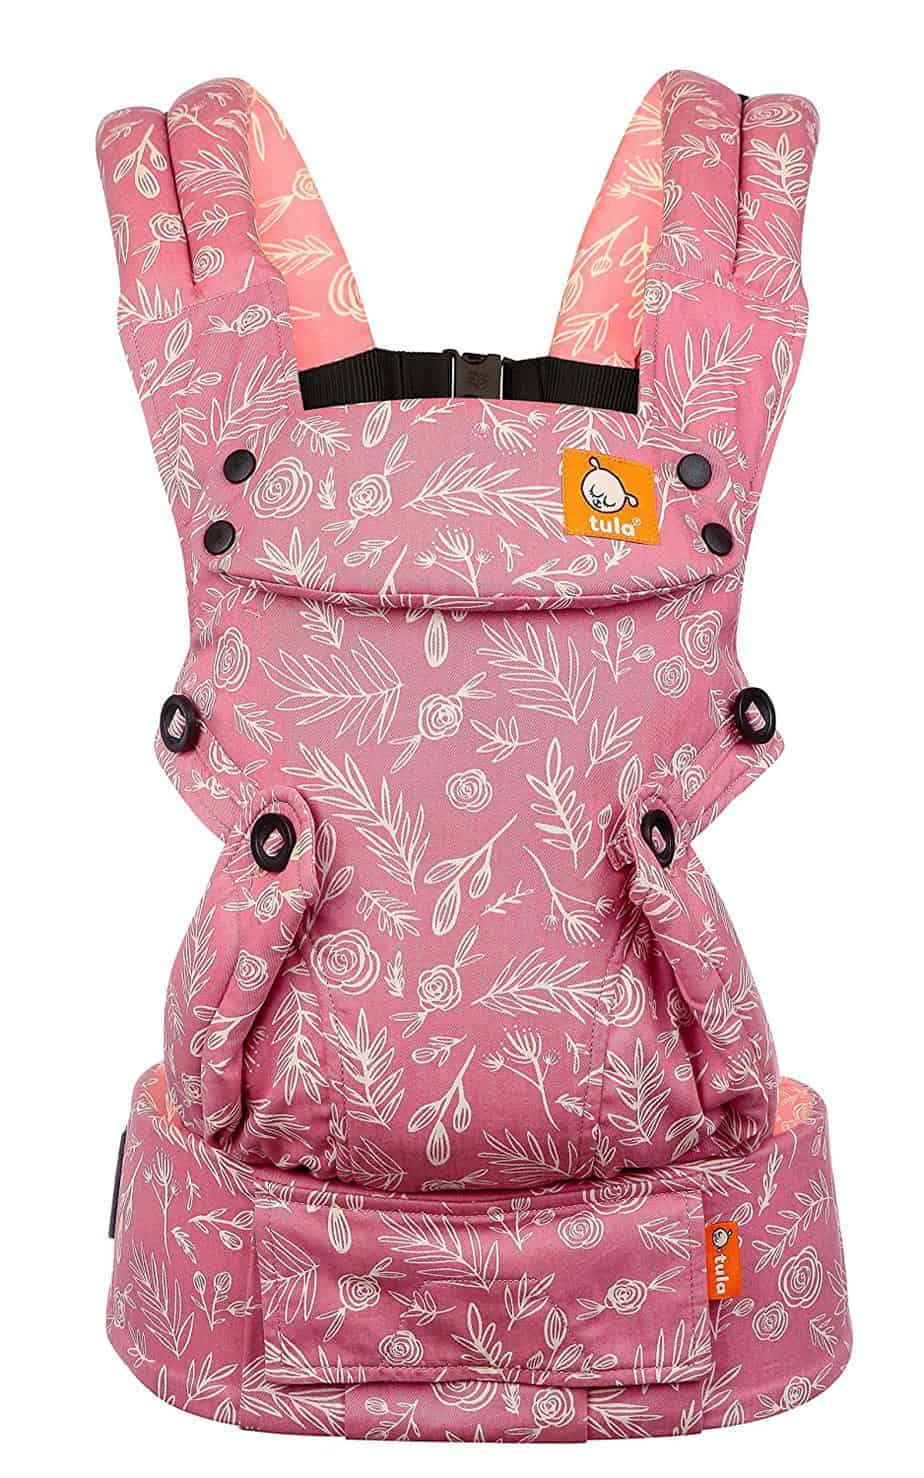 Baby Tula Explore Baby Carrier